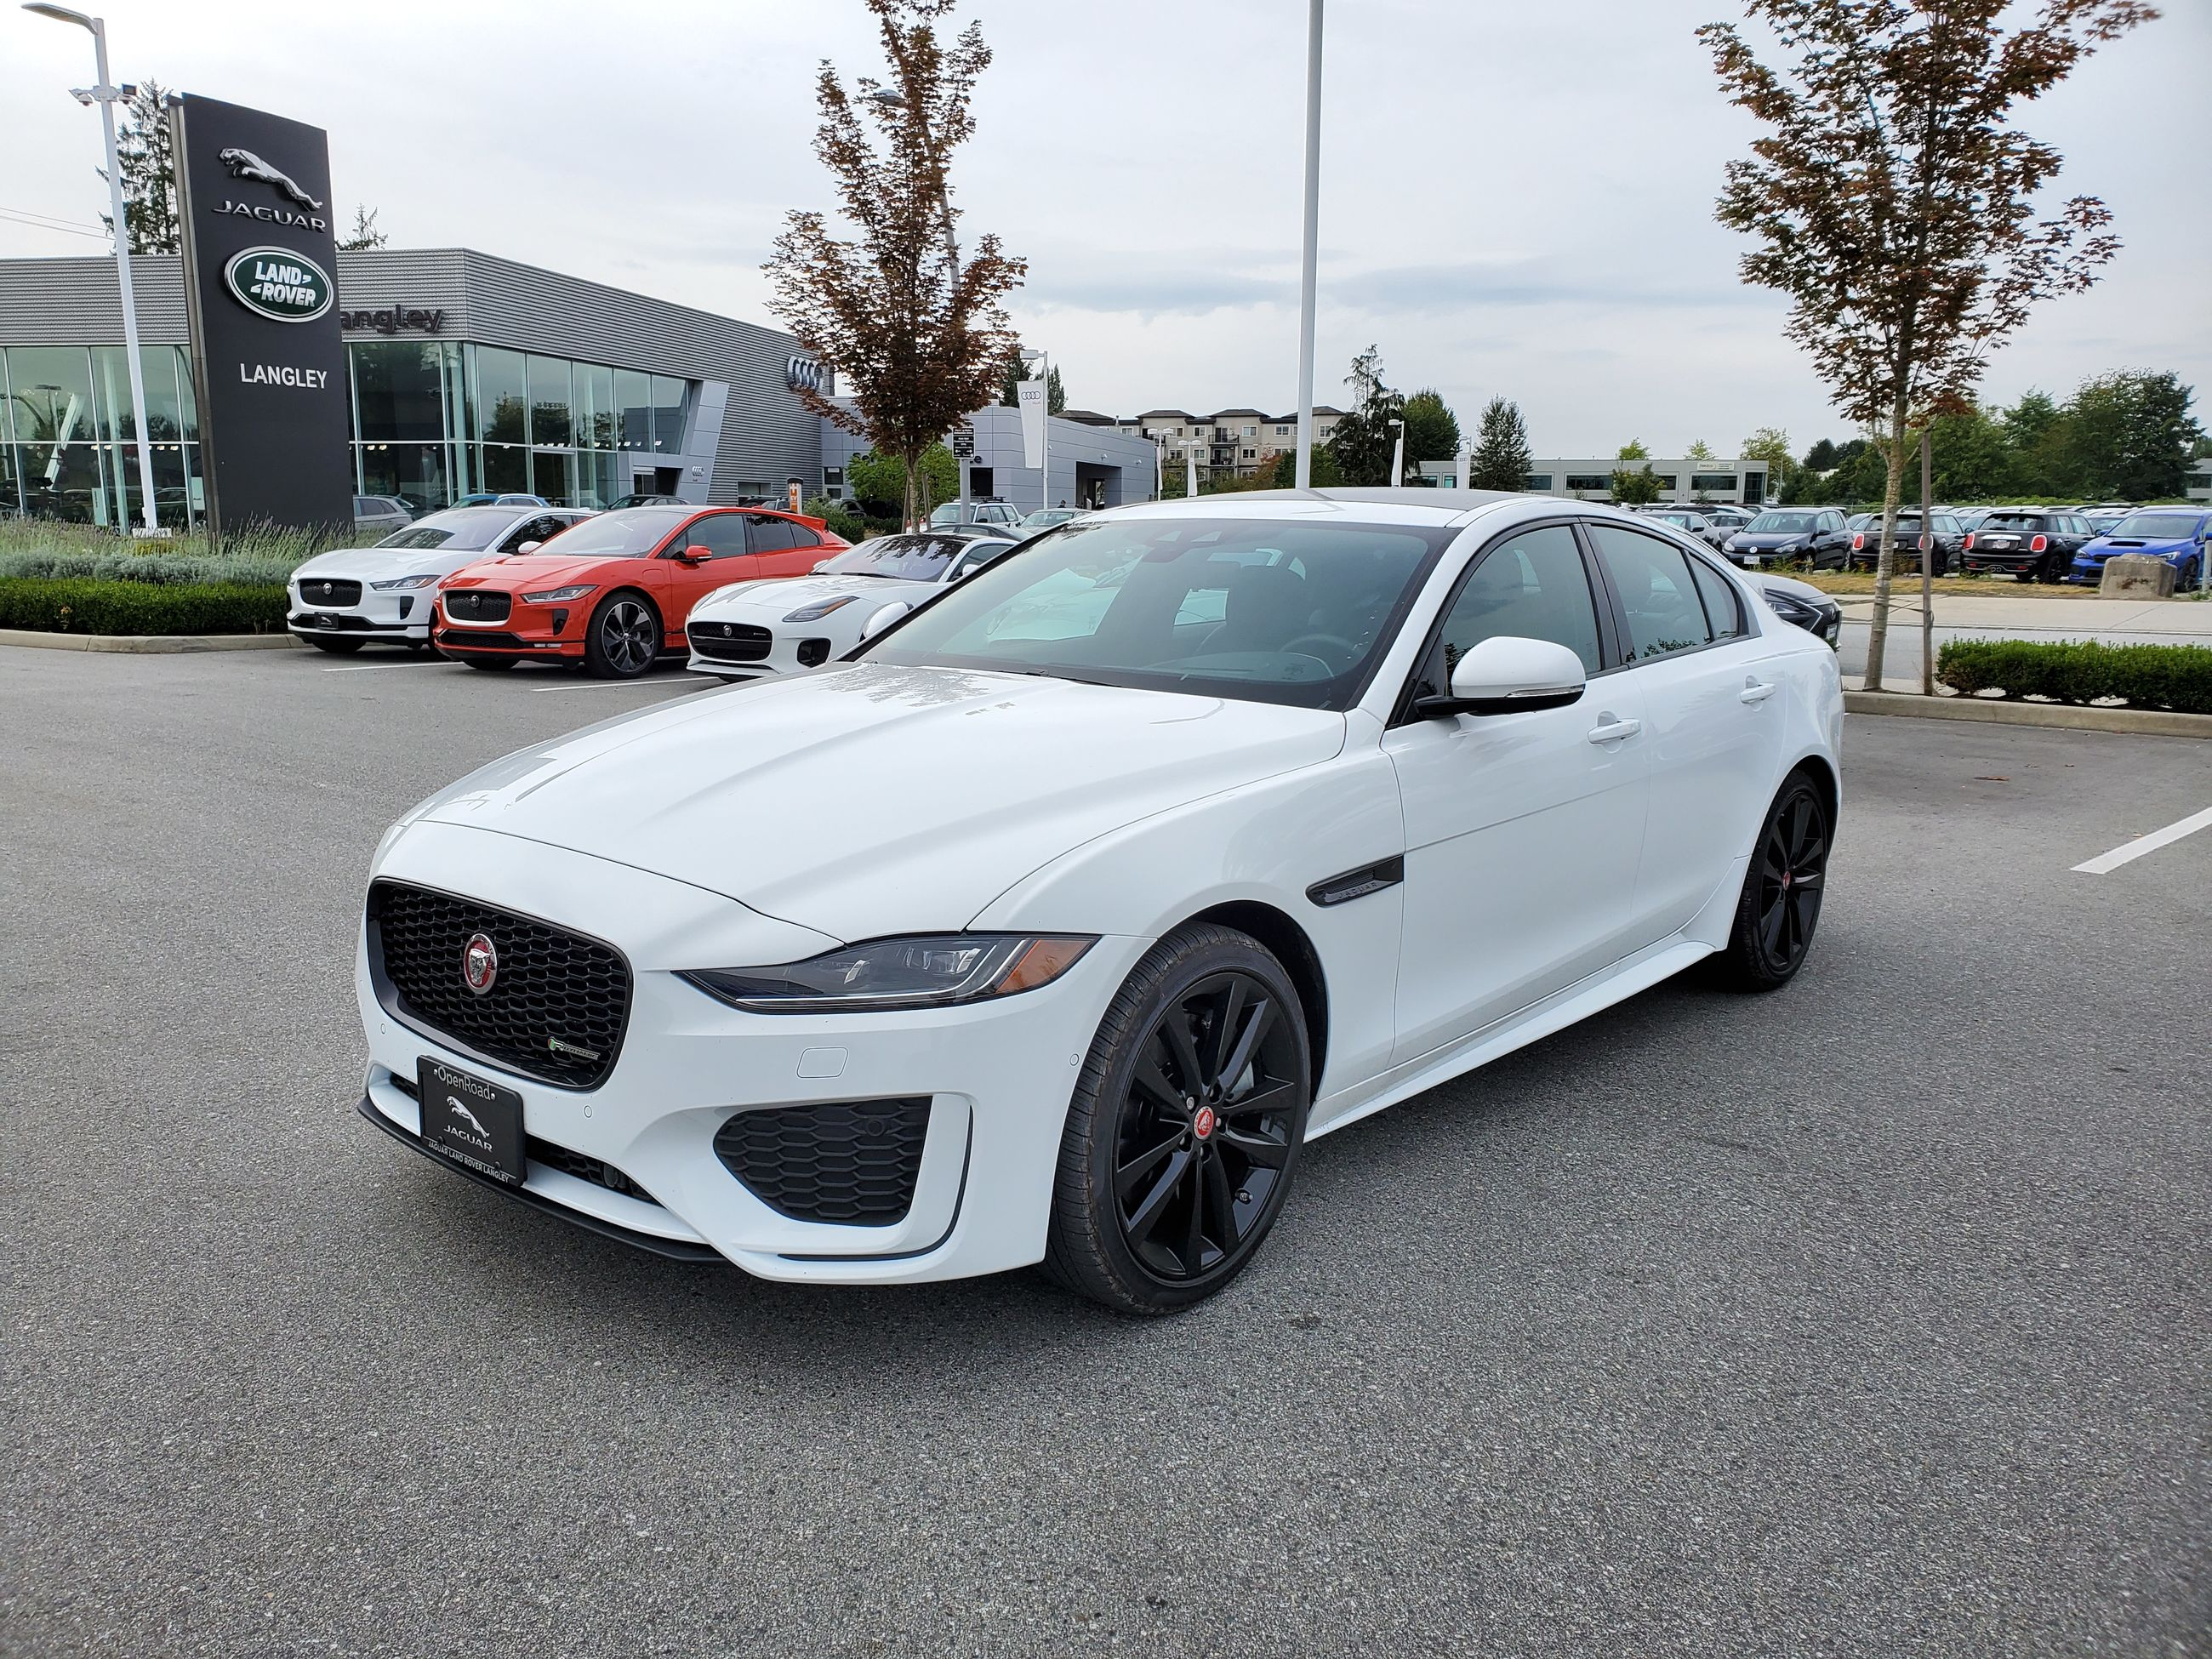 new 2020 jaguar xe p300 awd r-dynamic se - $60830.0